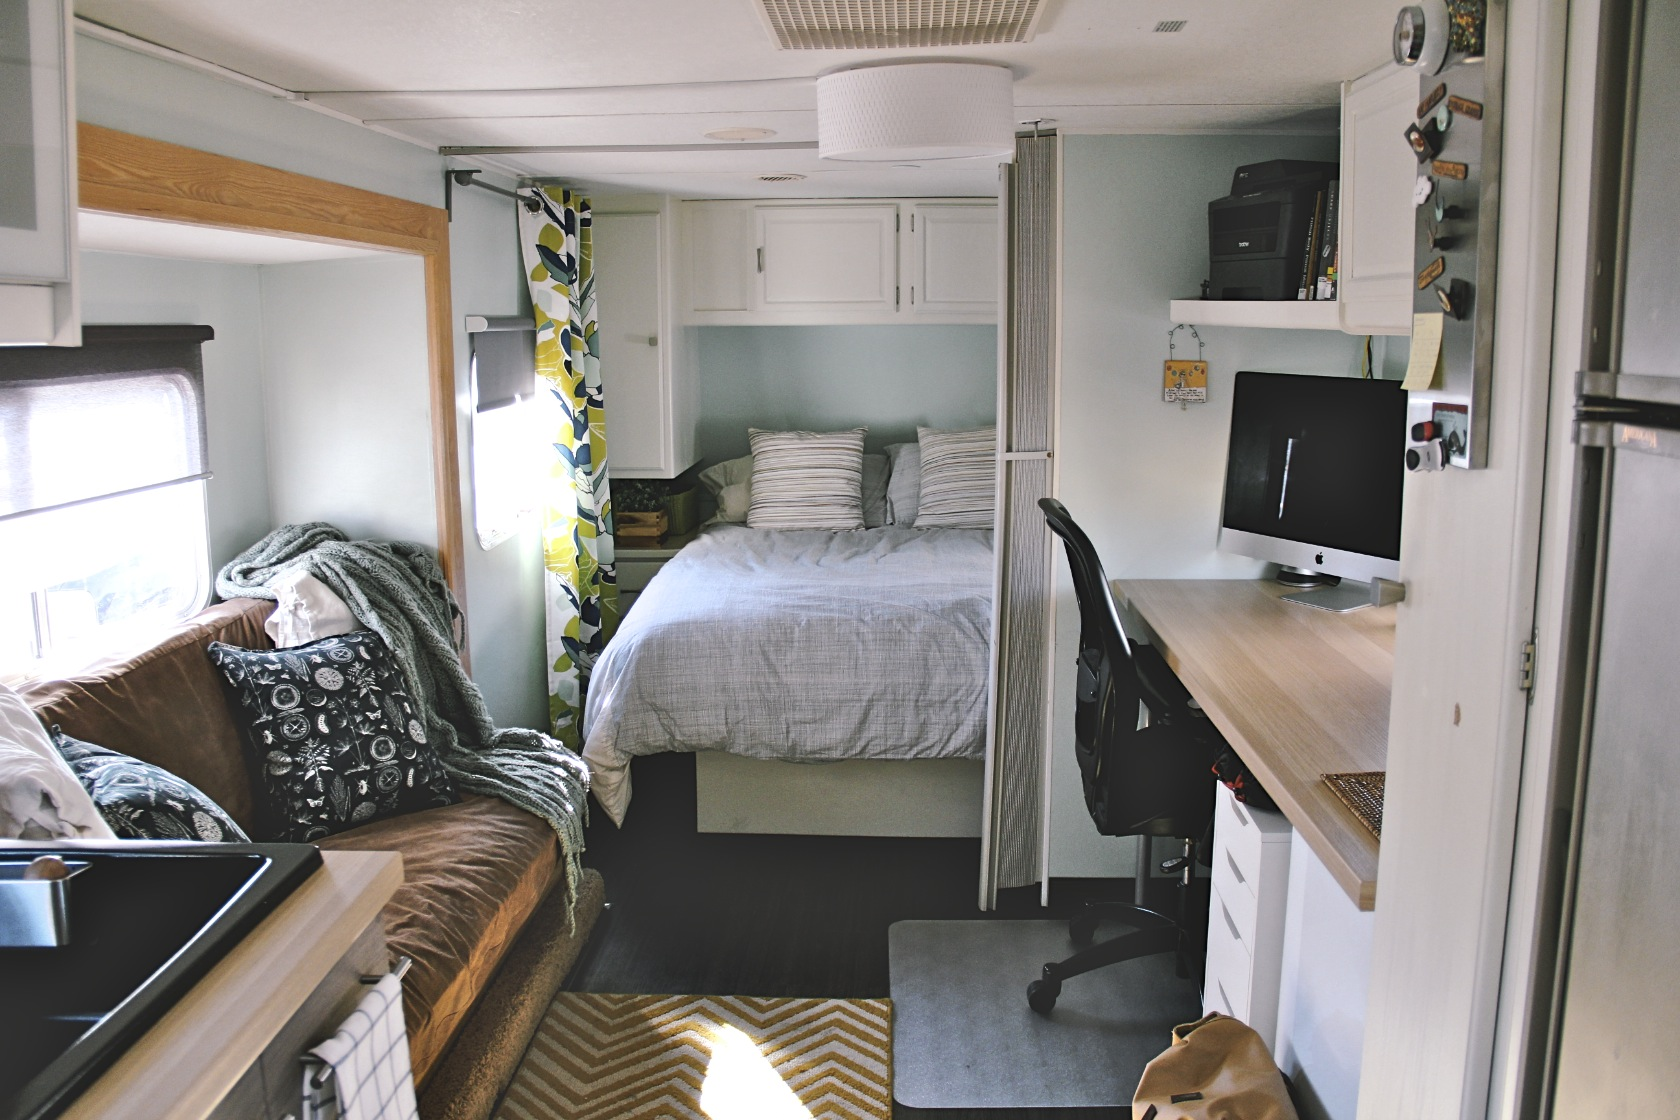 how to make a sofa bed from scratch black table with storage homes on wheels: 5 travel trailer makeovers we love ...